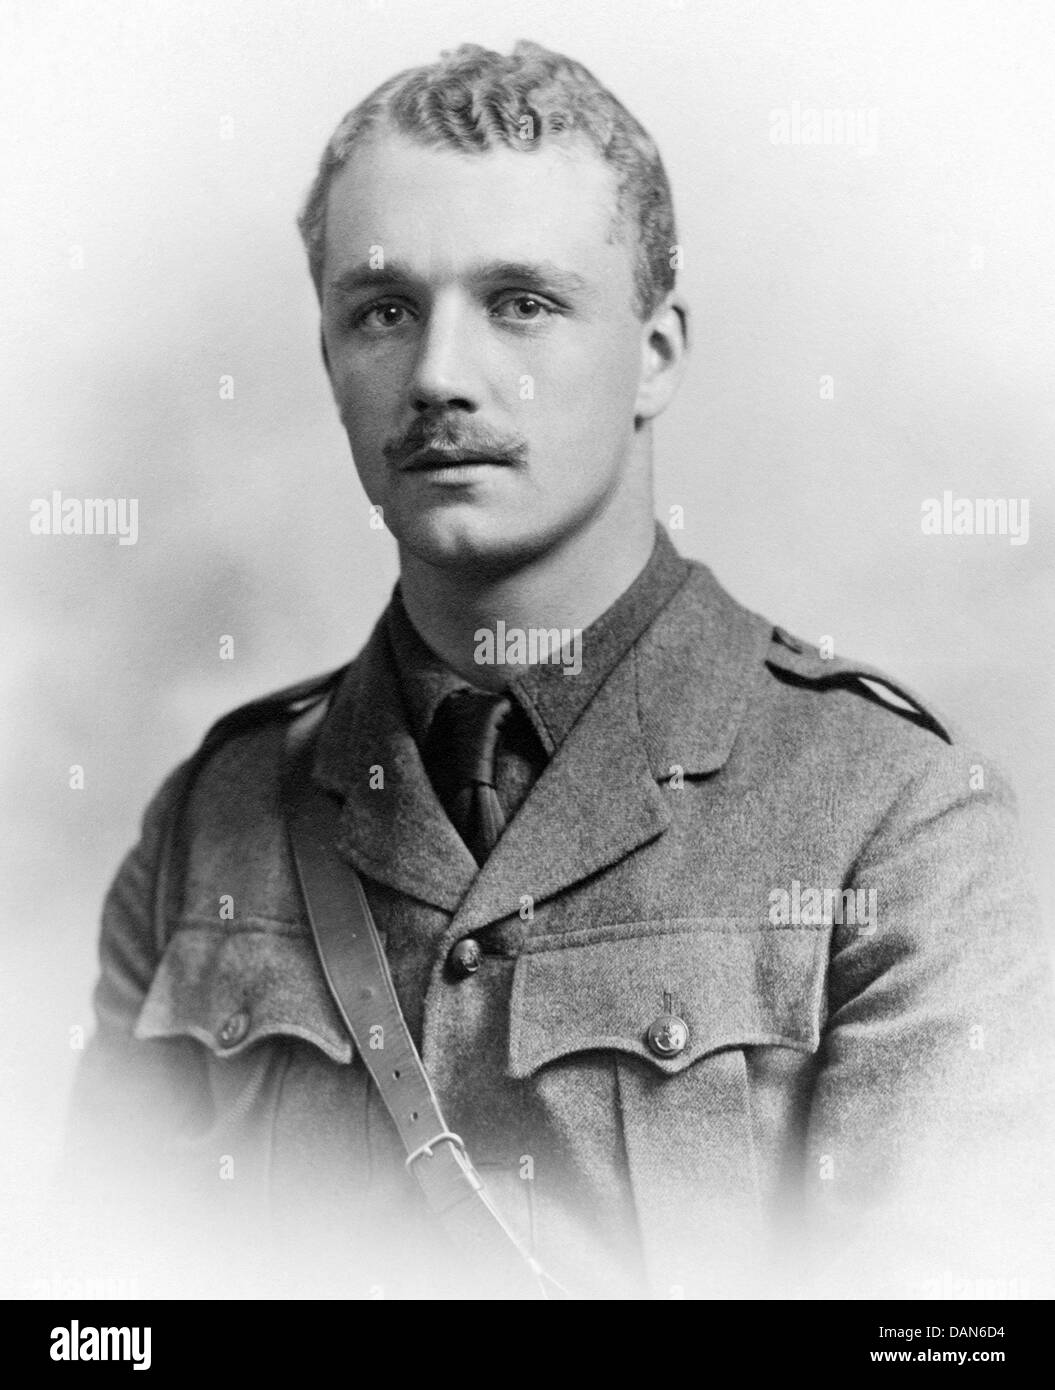 RONALD VICTOR BODLEY (1892-1970) British army officer and author about 1915 - Stock Image